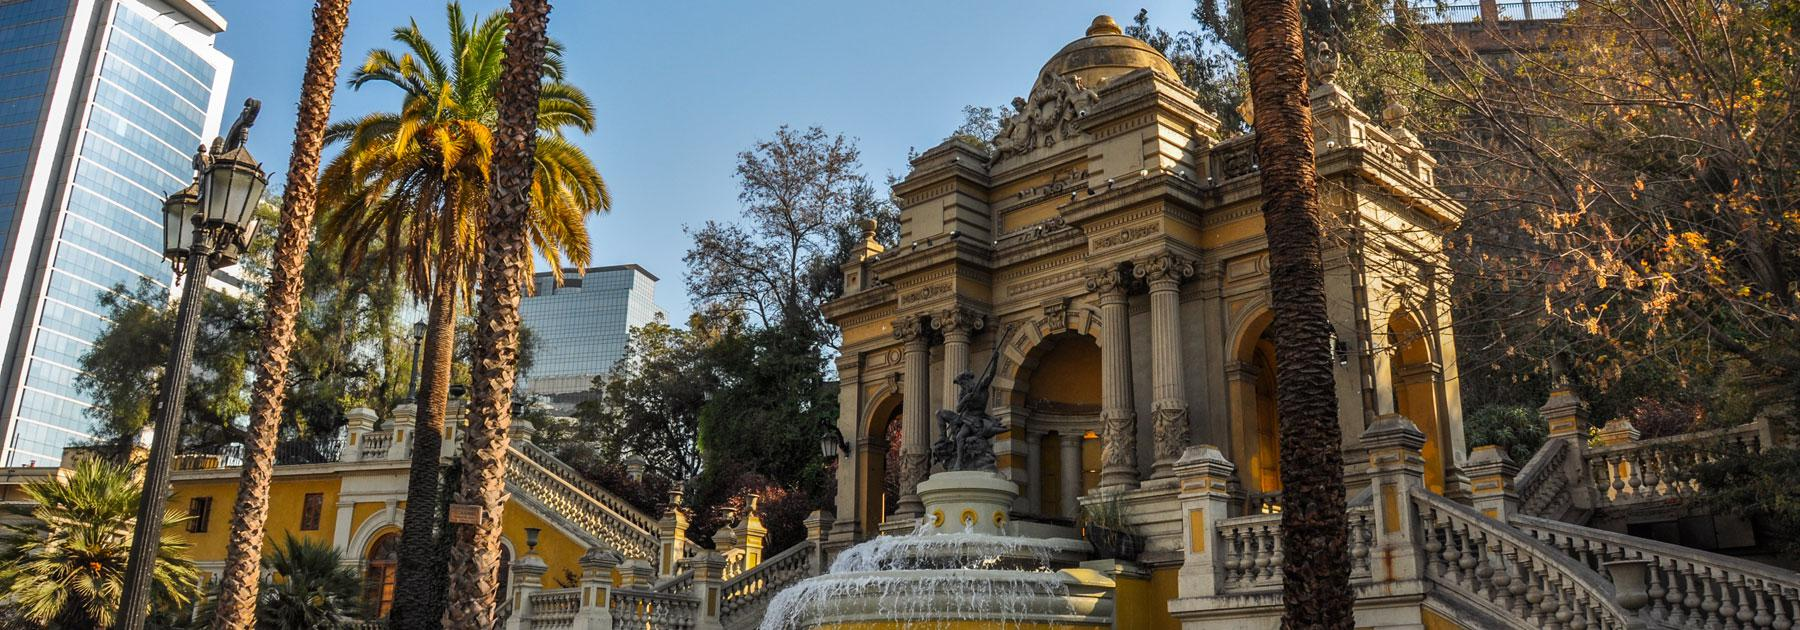 Santiago Vacation Packages | Santiago Trips with Airfare